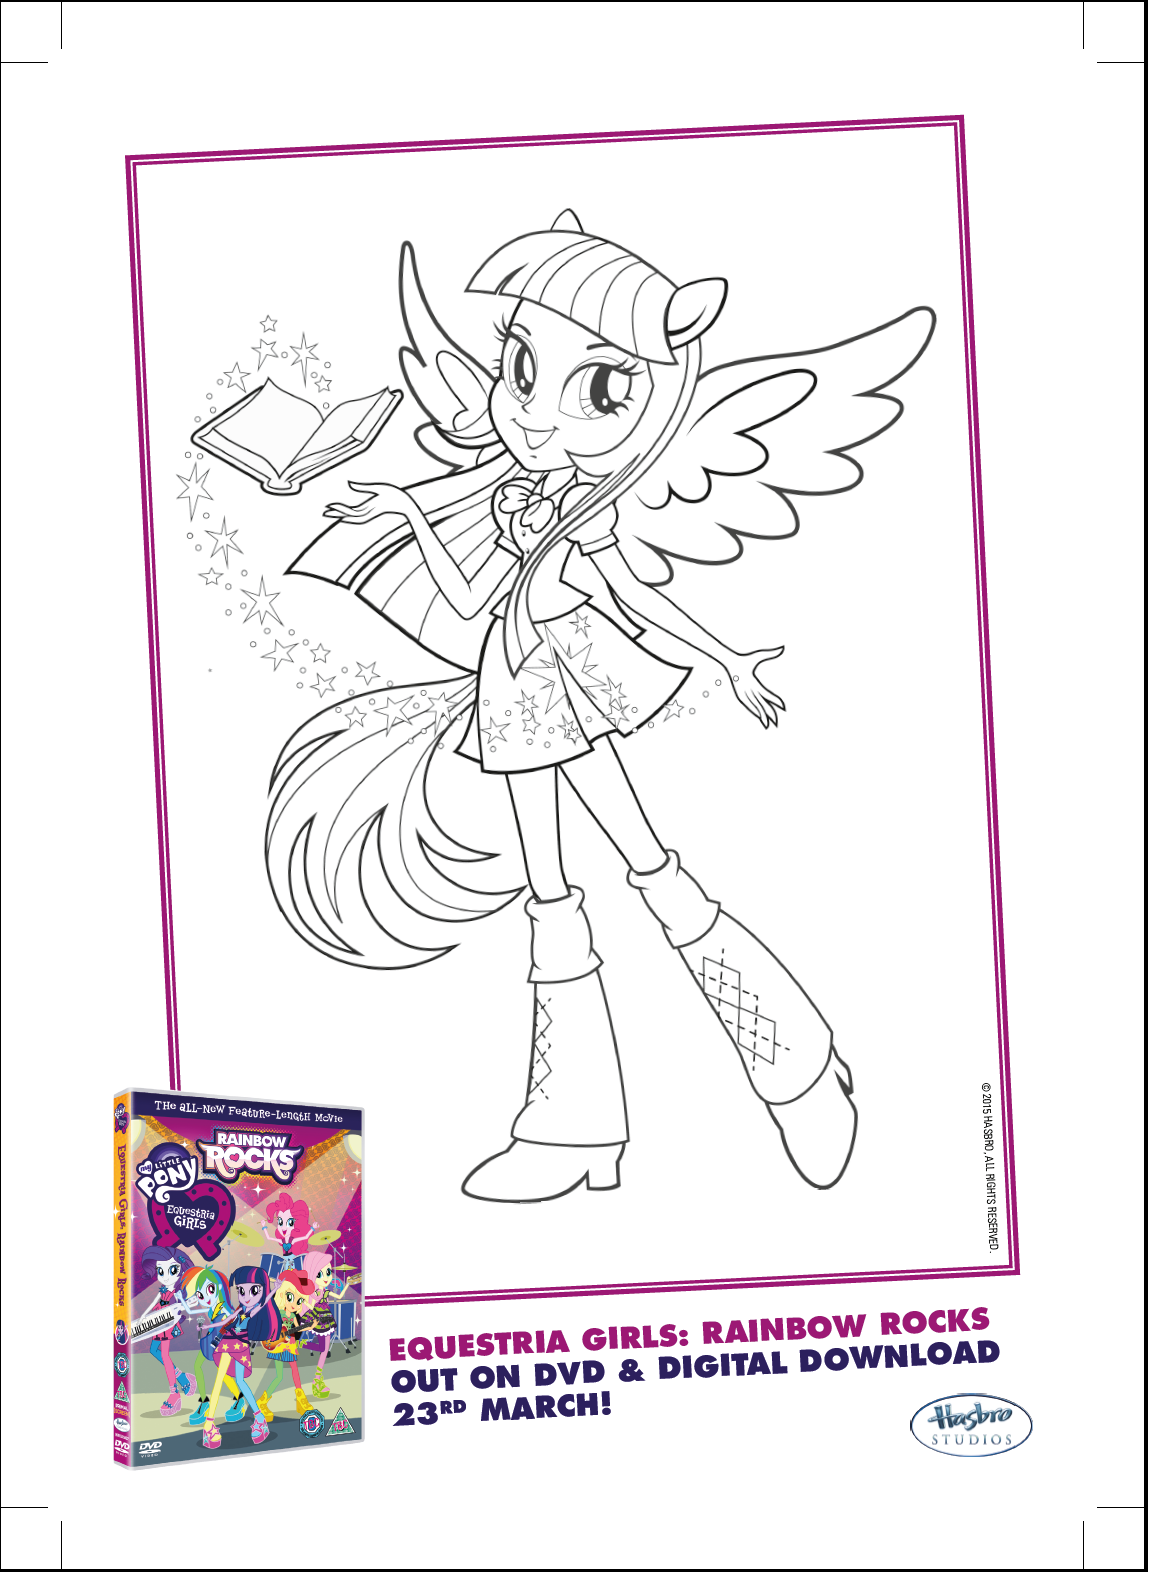 Image twilight sparkle rainbow rocks coloring for My little pony equestria girls rainbow rocks coloring pages